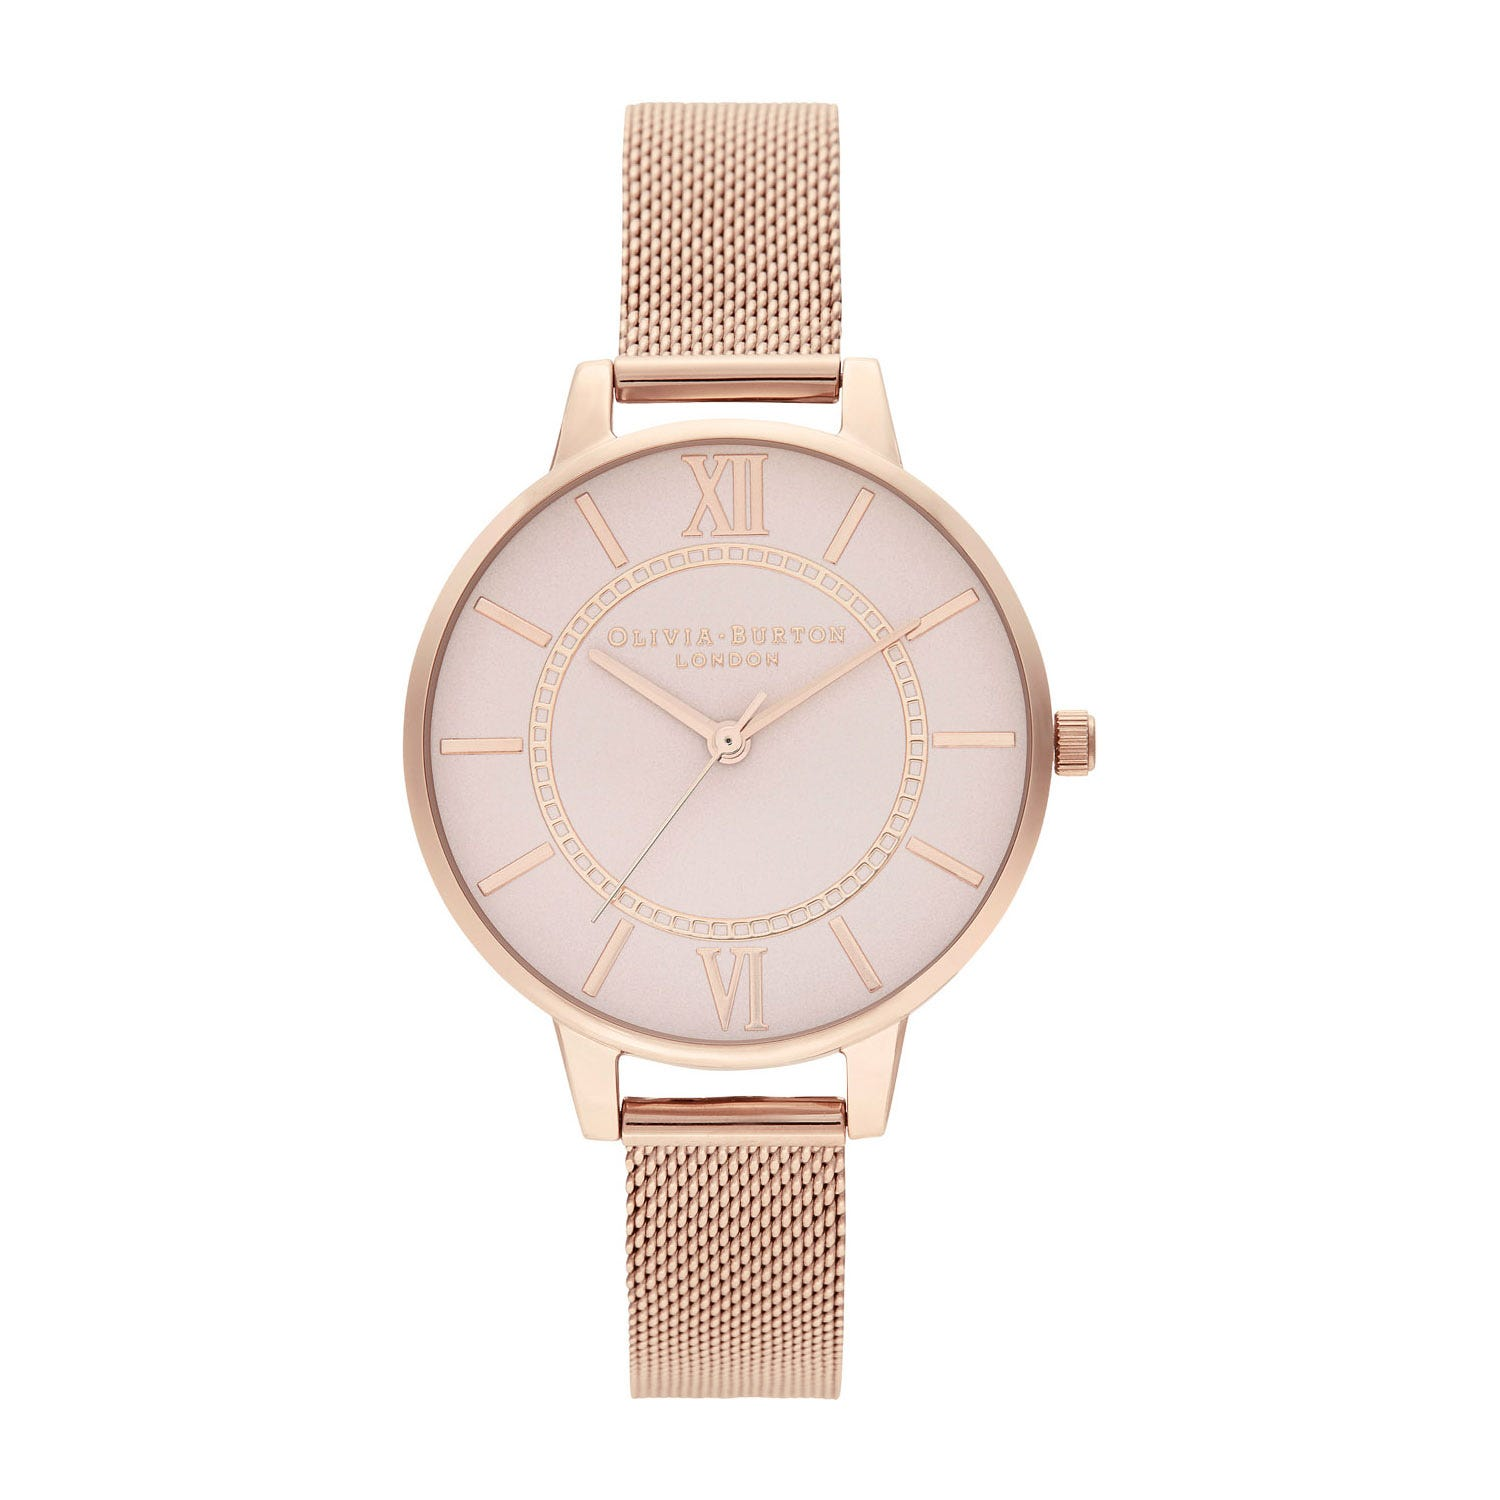 Olivia Burton Wonderland Rose Gold-Toned & Pale Grey Dial Ladies Watch